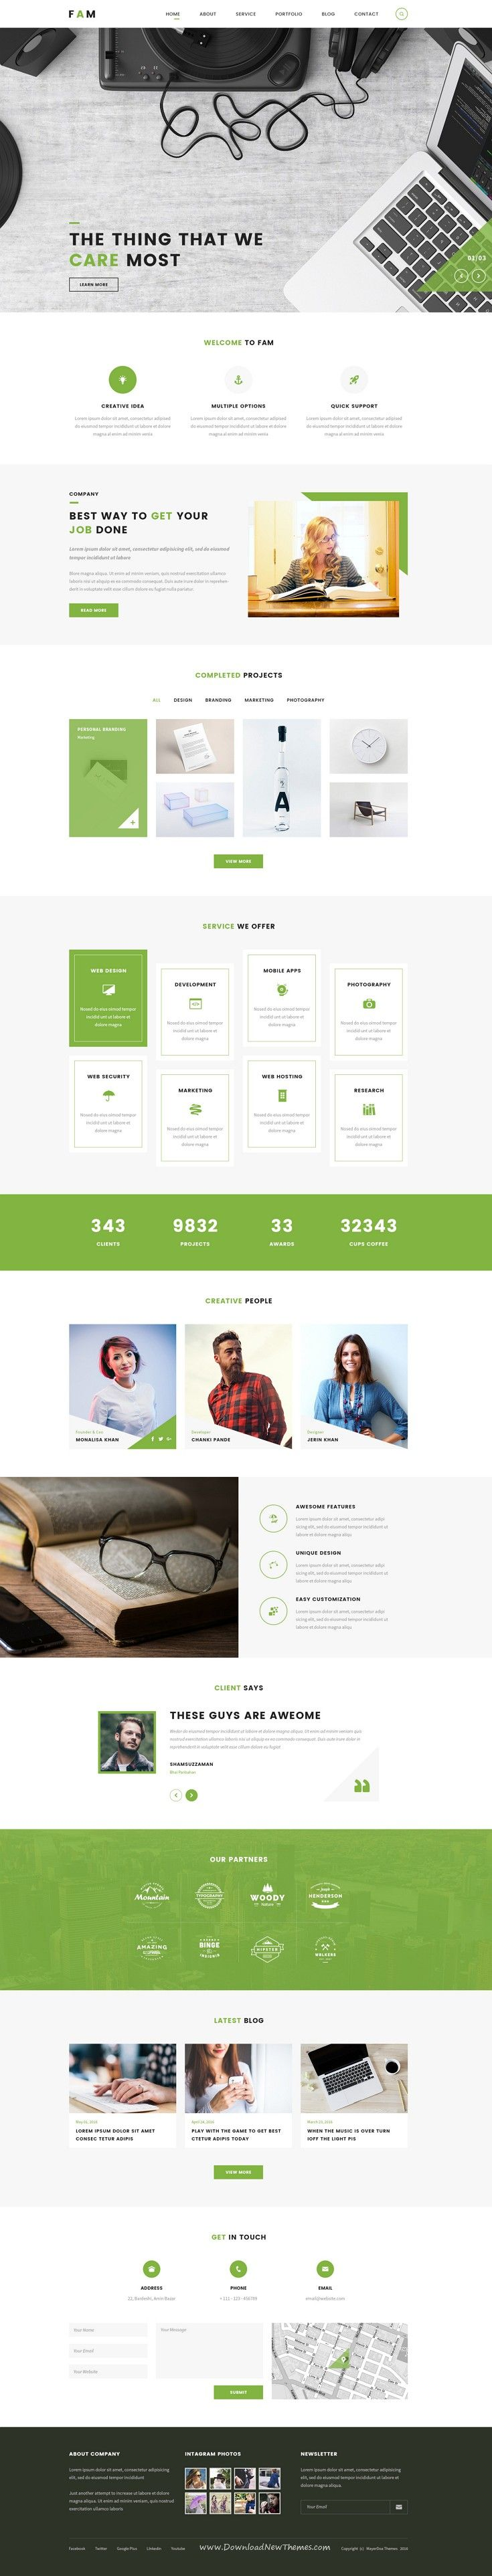 FAM is a clean, modern, stylish #psd #template for creative #agency or corporate companies website. Download Now!